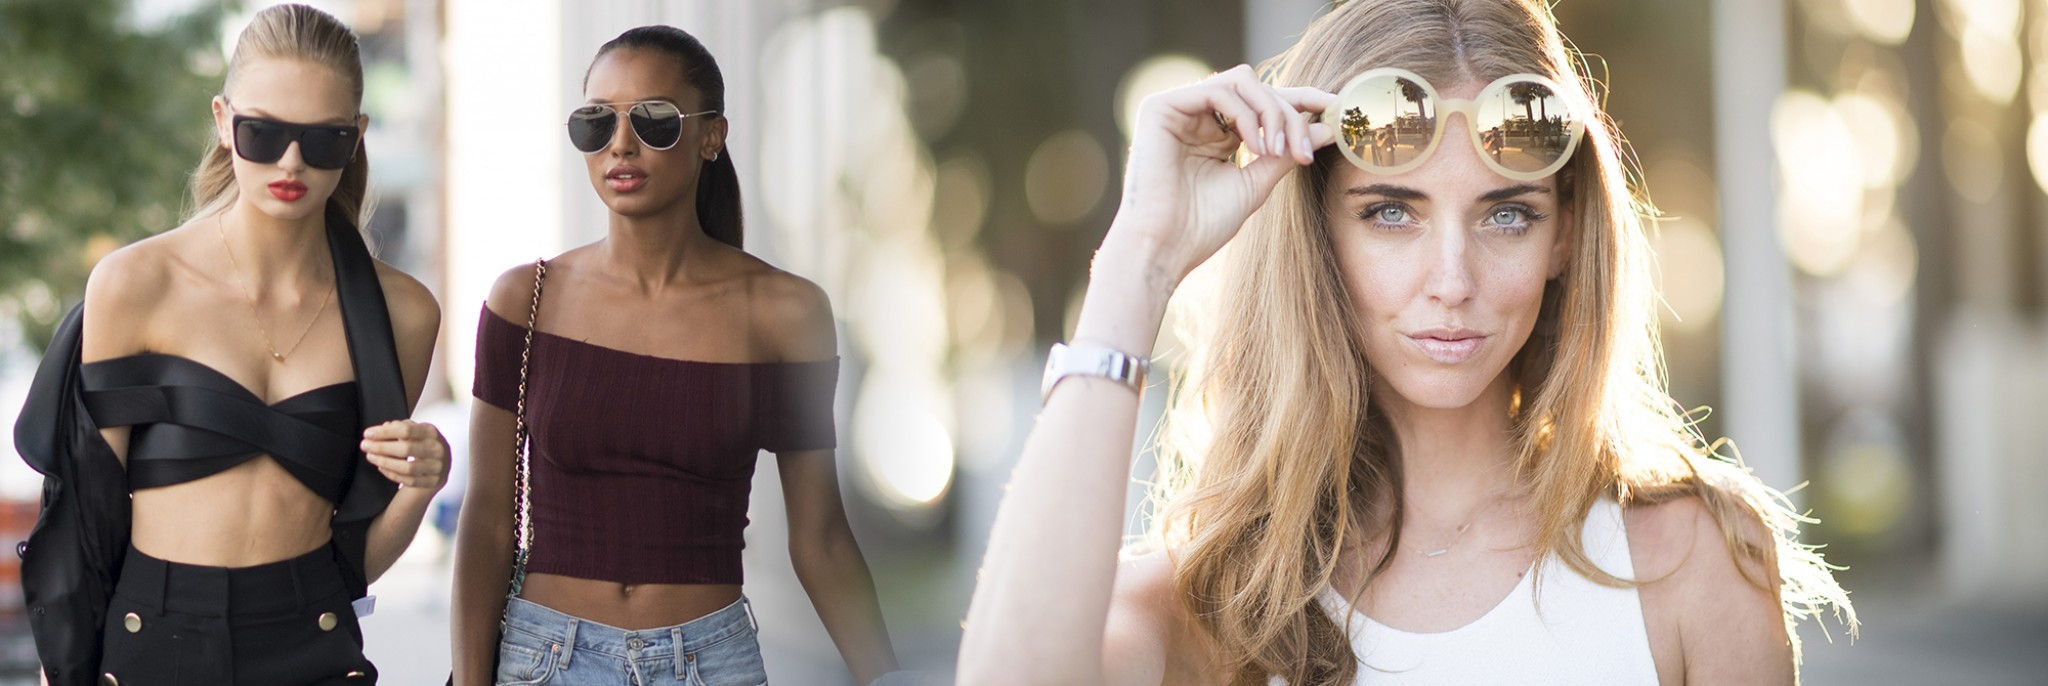 12 Cool Looks to Wear in the Scorching Heat